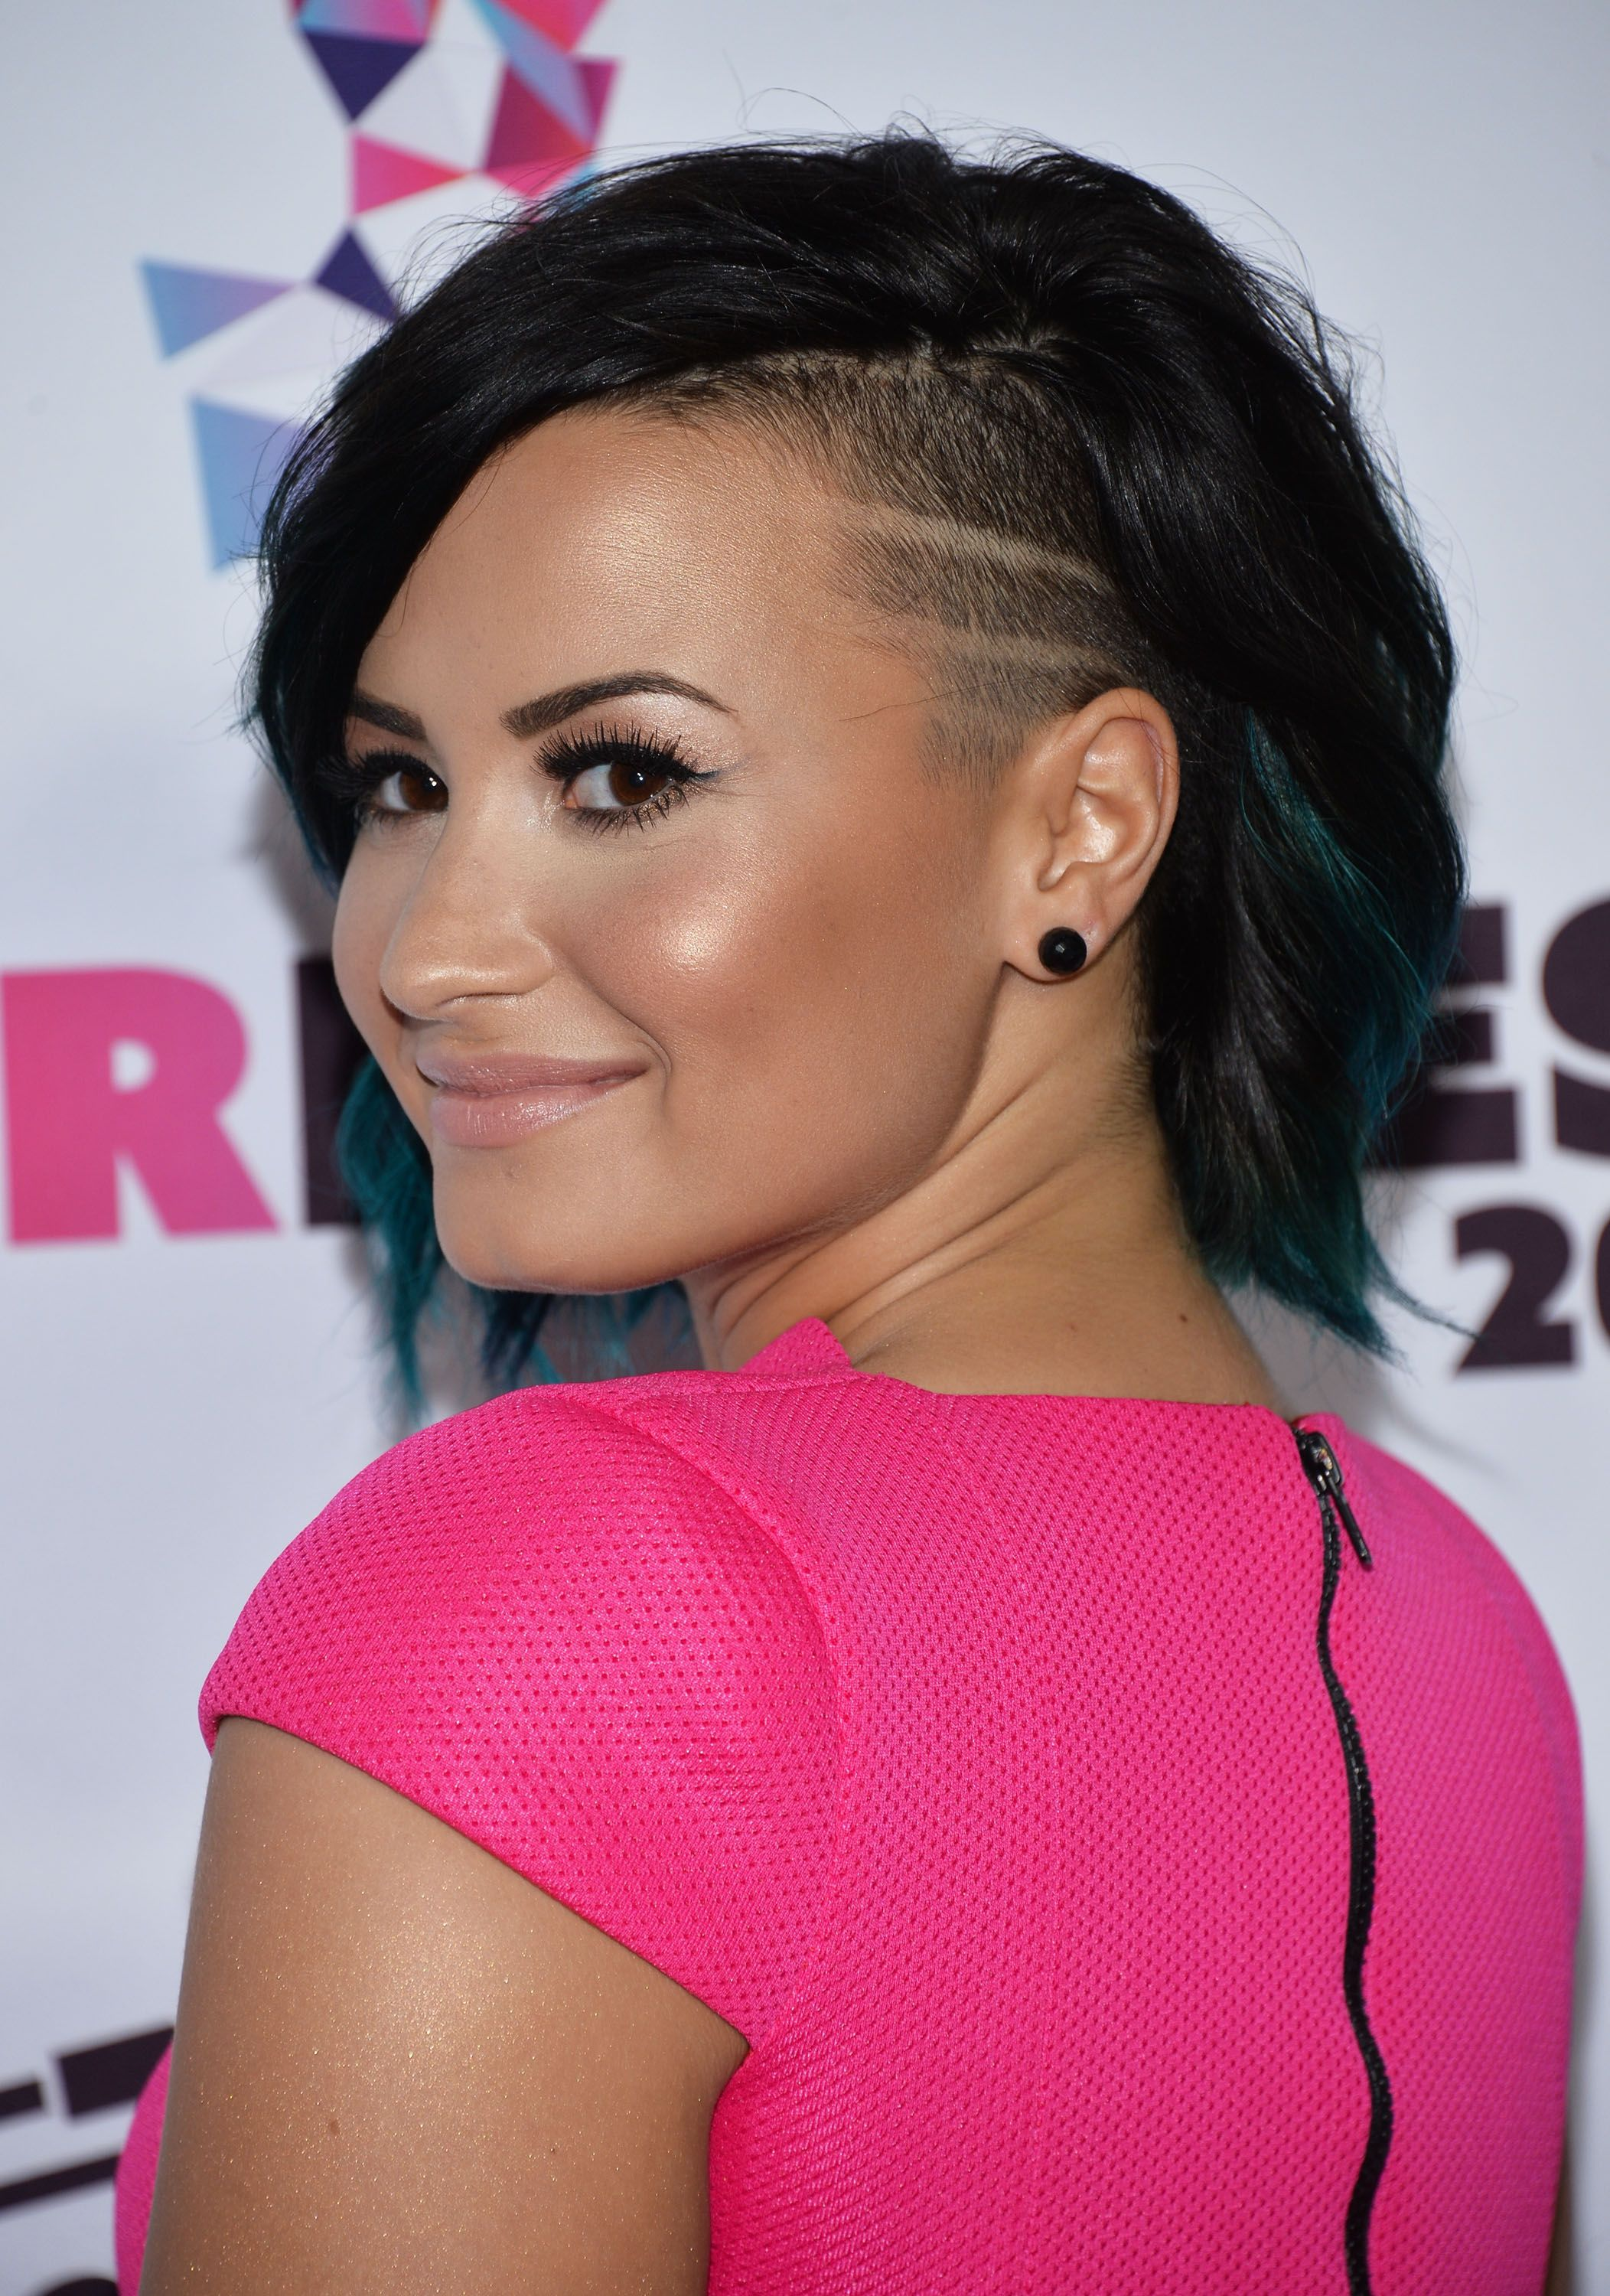 Demi lovato hair 2015 google search hairstyle ideas pinterest demi lovato hair 2015 google search best hair colorhair solutioingenieria Image collections